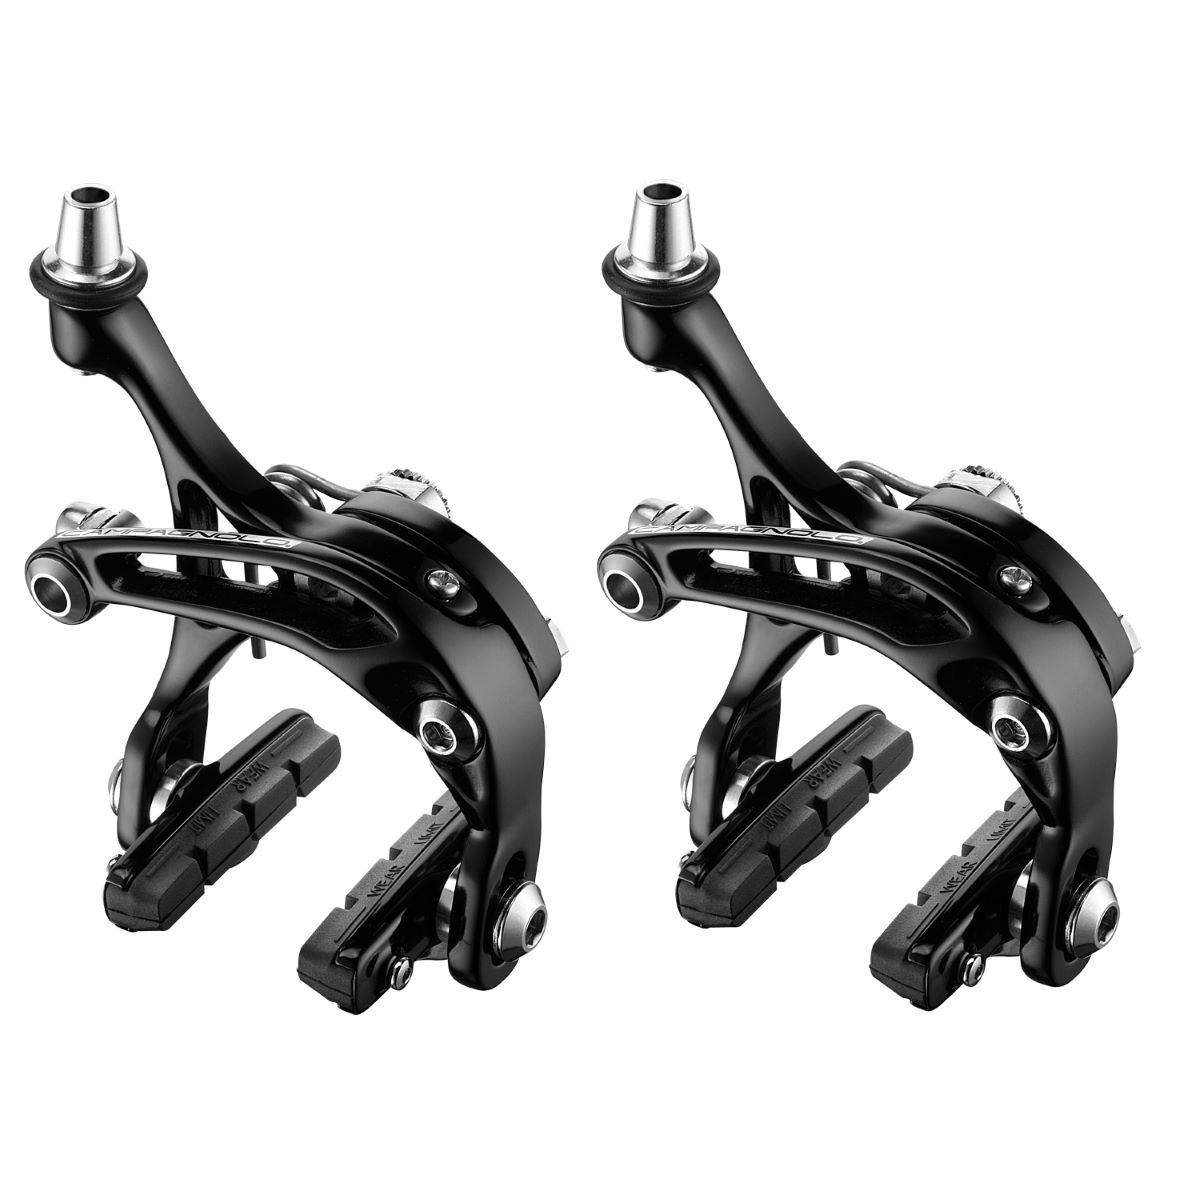 Campagnolo Skeleton Brake Caliper Set (Dual Pivot)